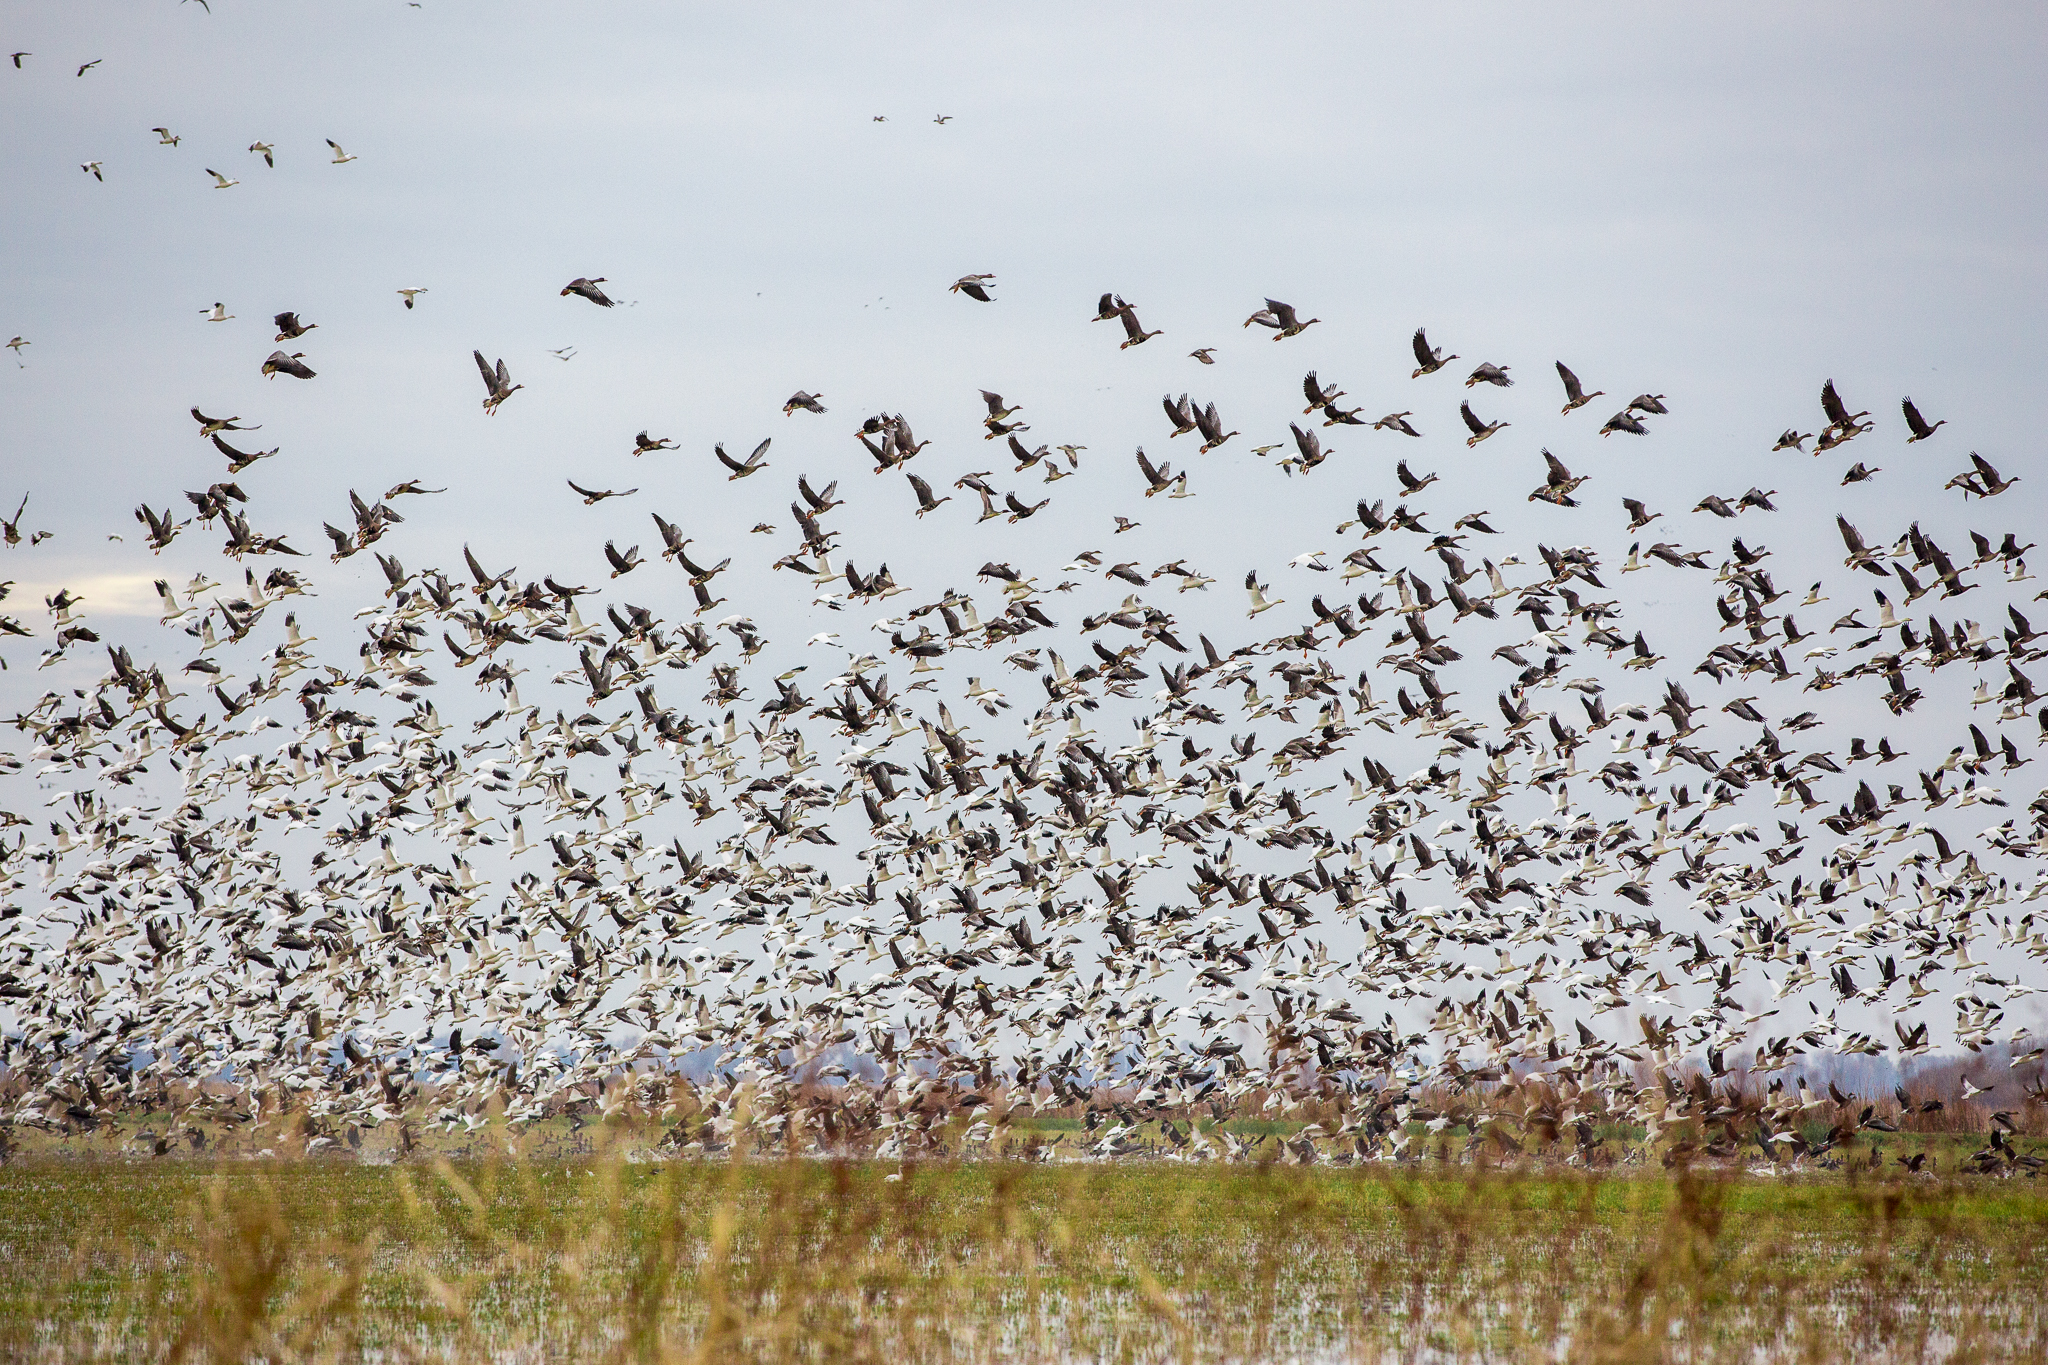 A flock of birds takes off from a field near Richvale, California—their collective wing beats filling the air with a mass of bodies and a rush of sound.